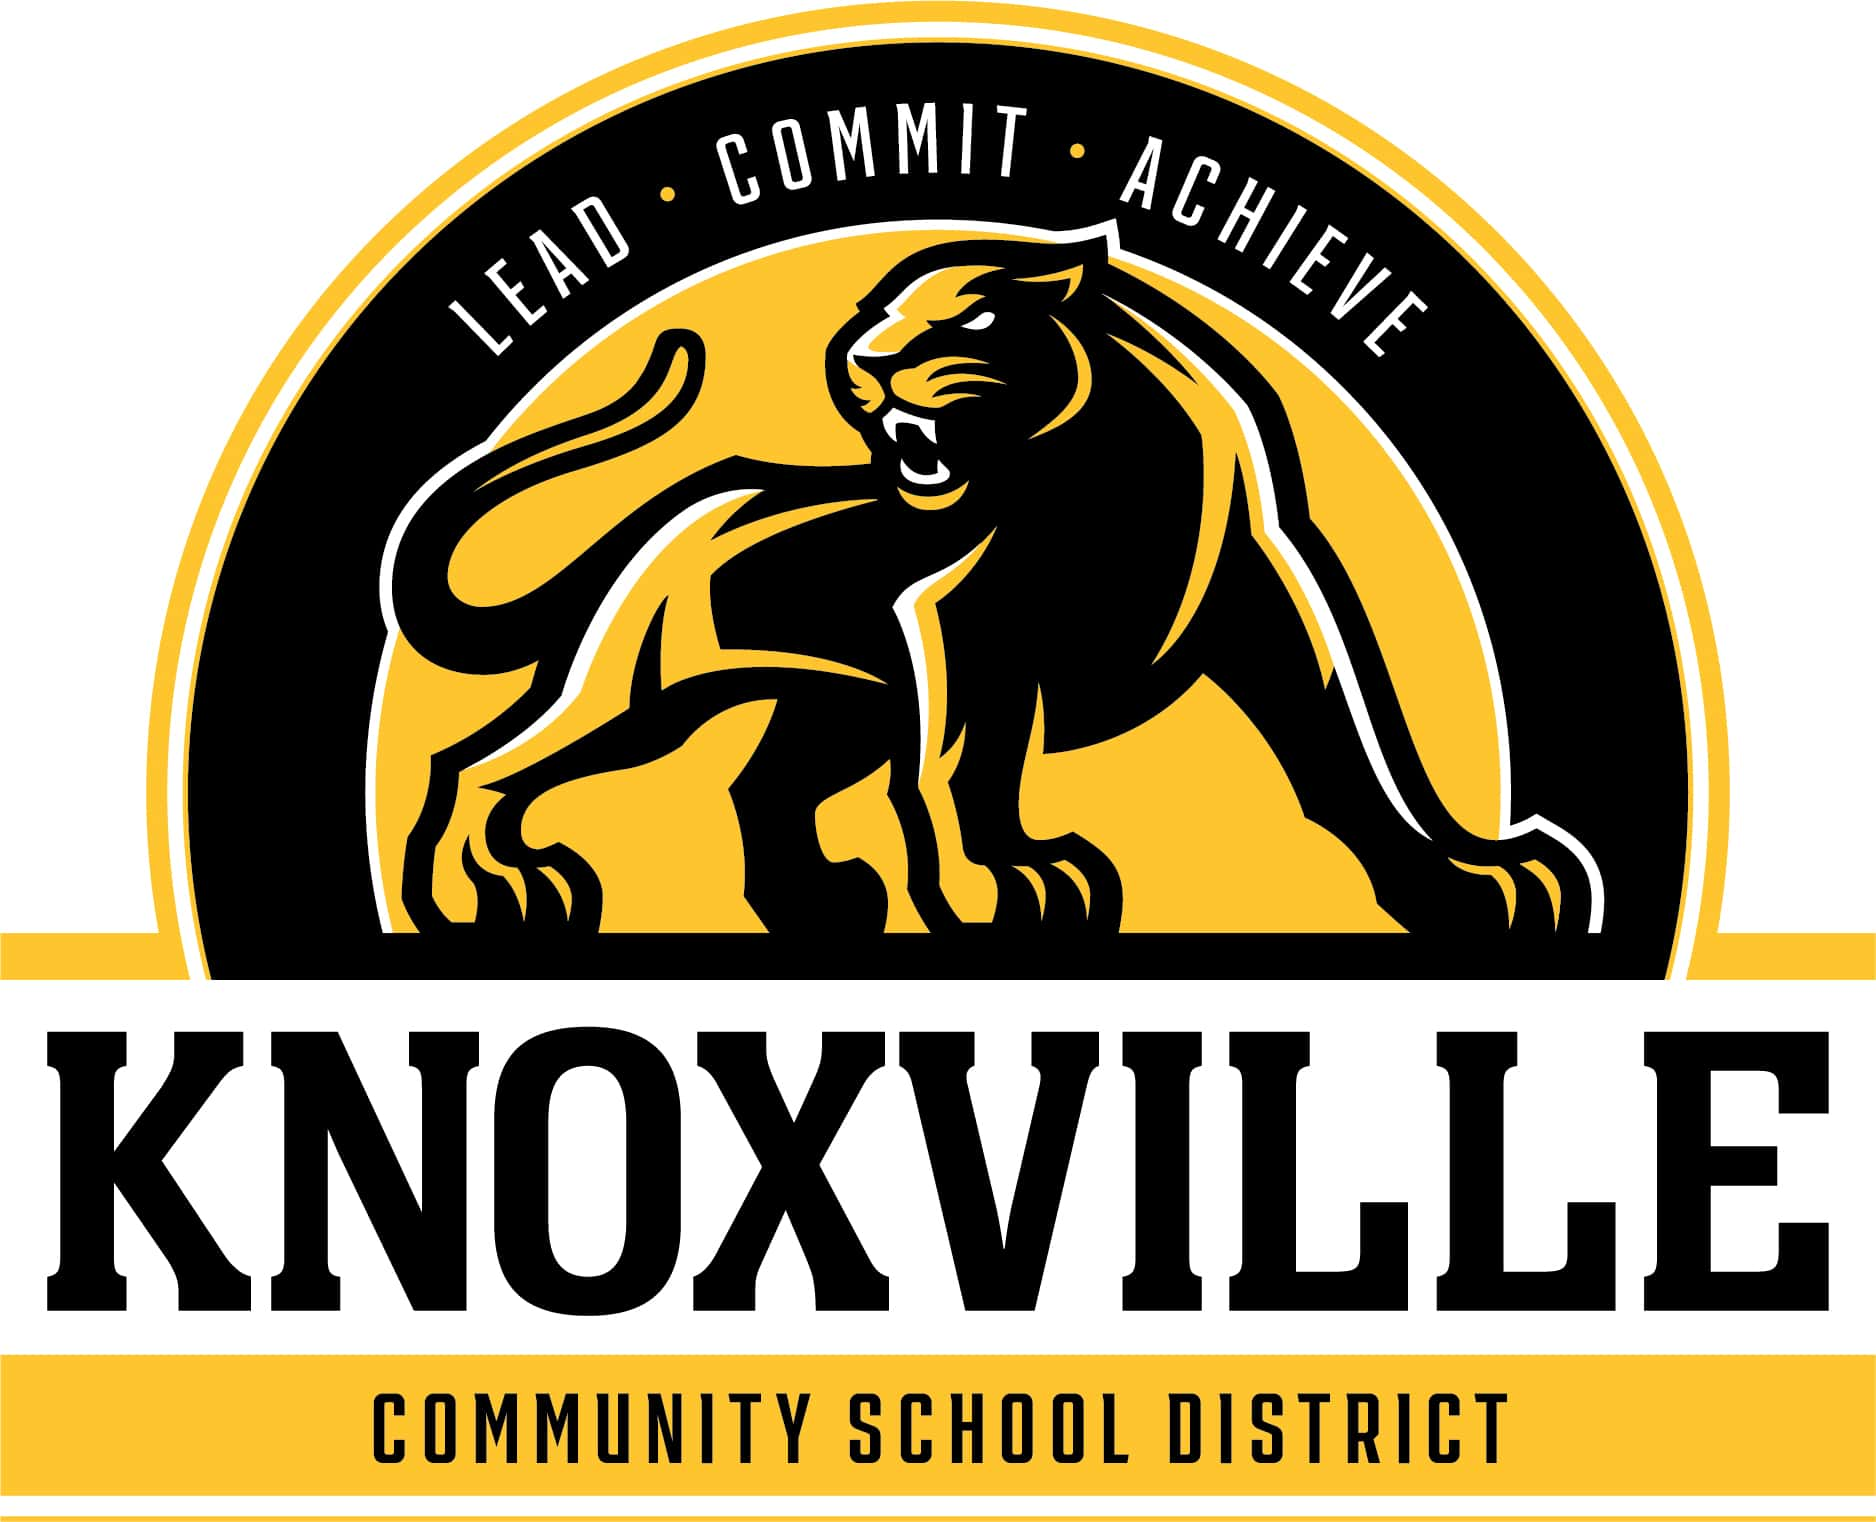 Knoxville School Board to Consider Revised 2020 2021 Calendar